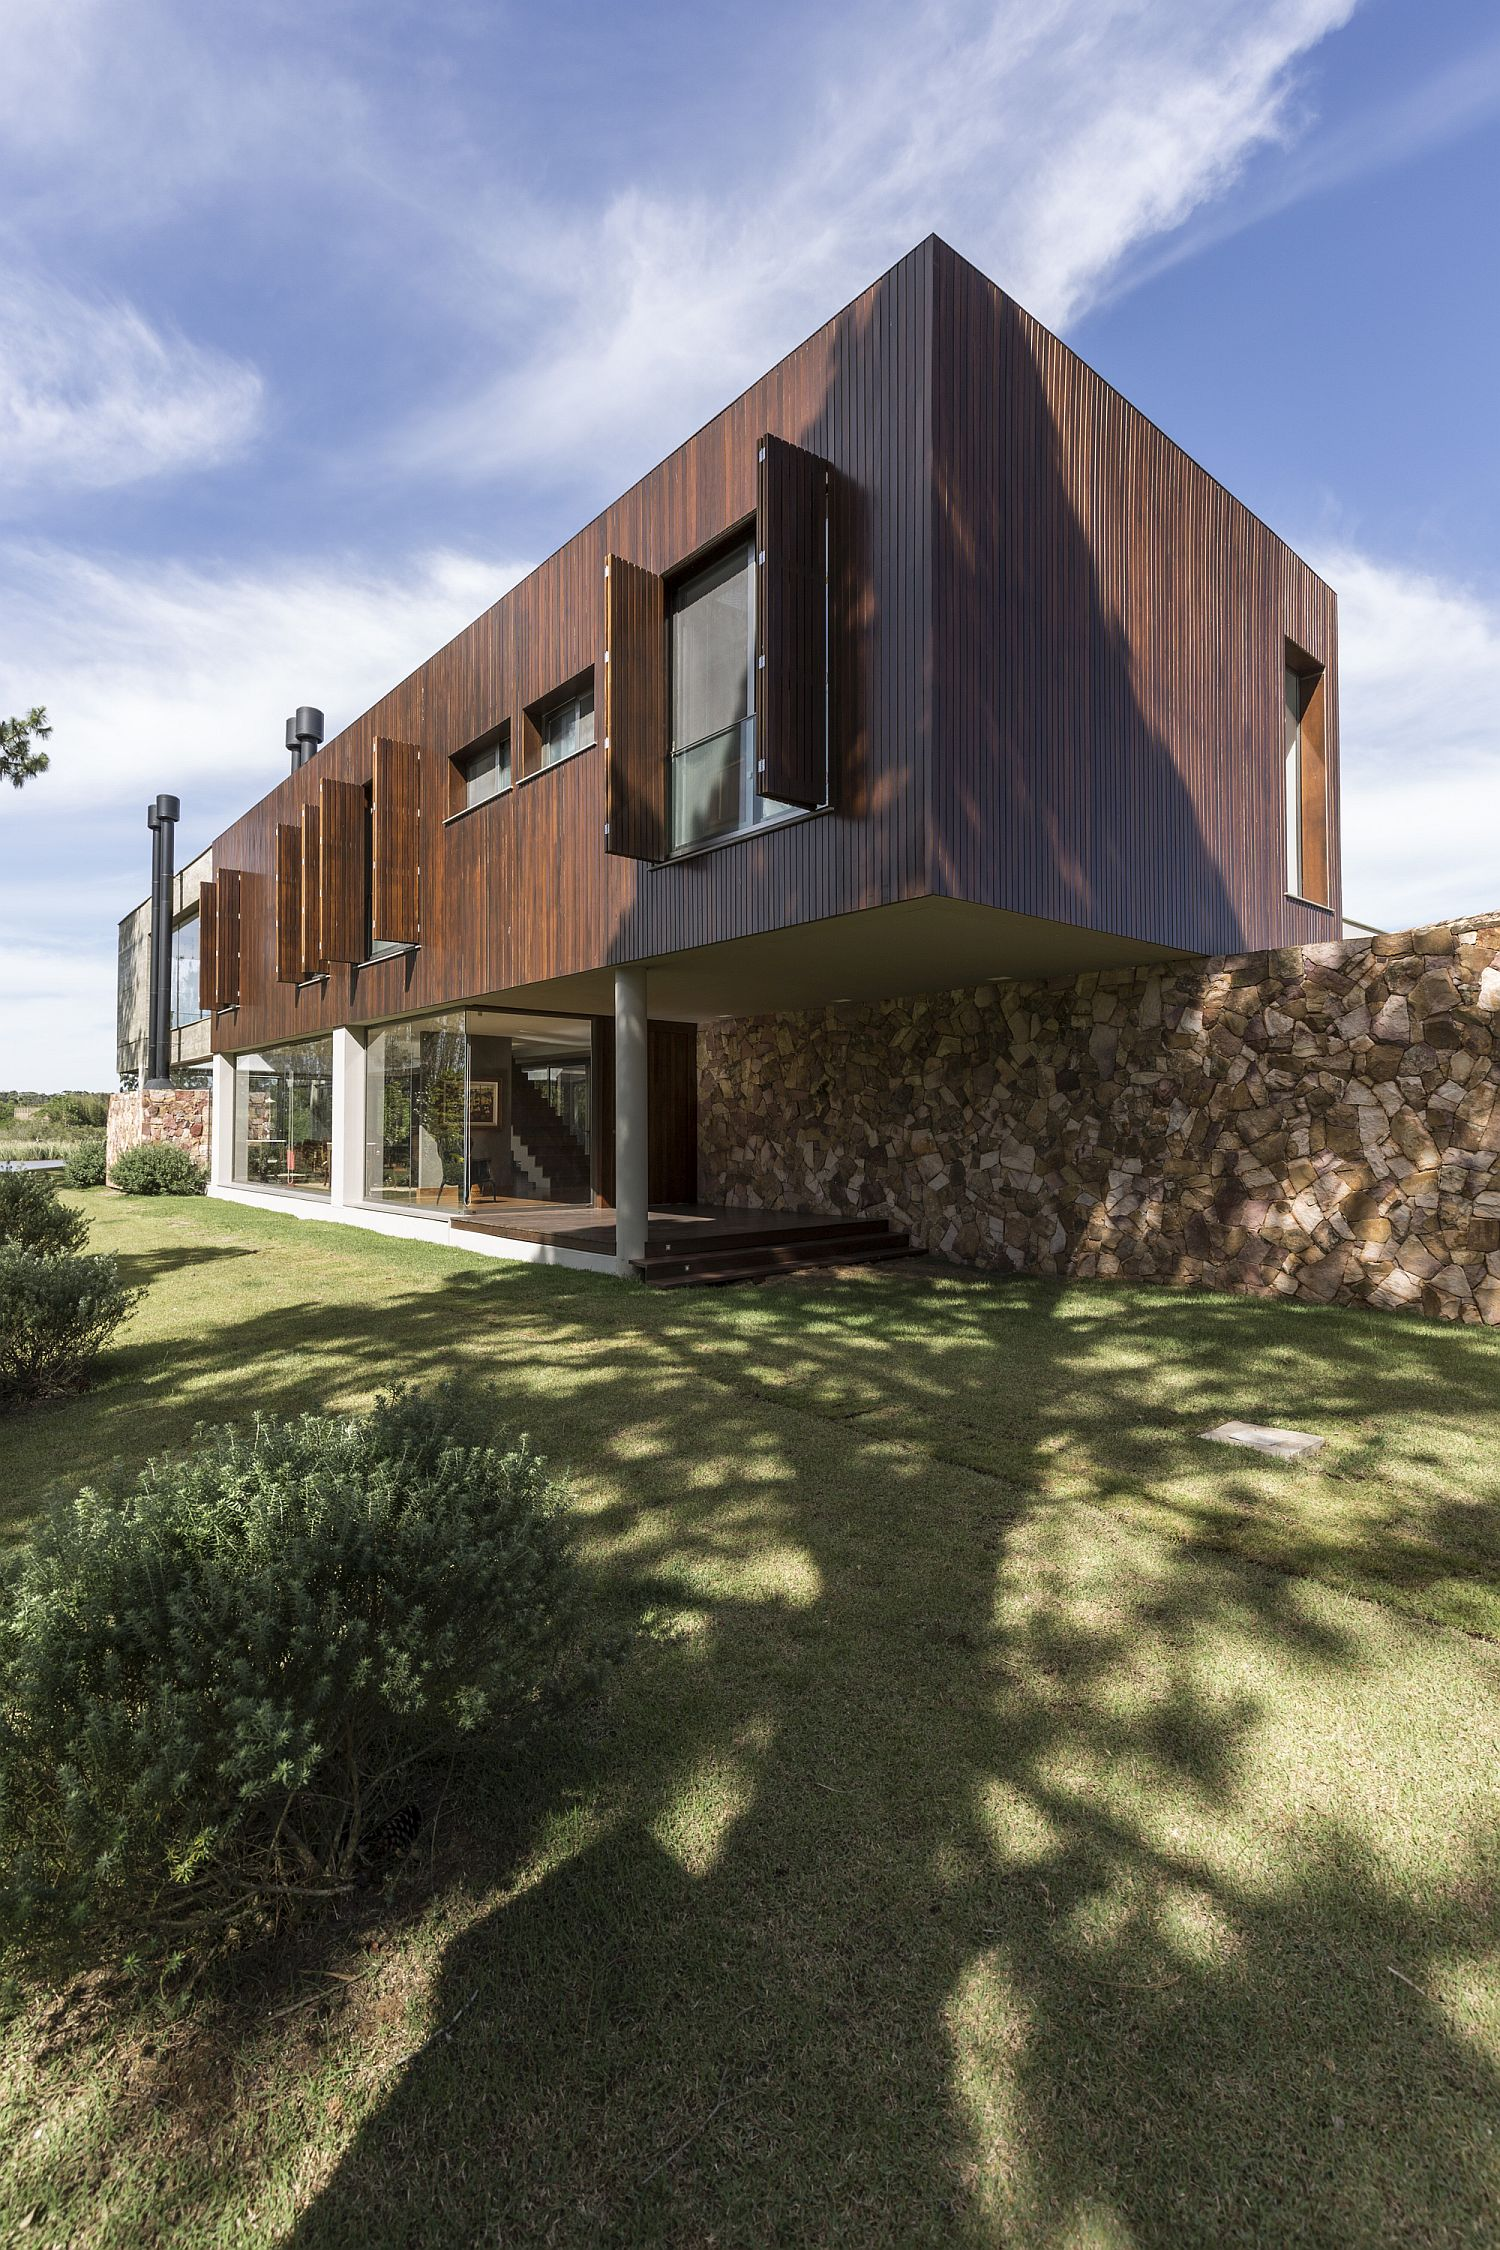 Concrete cantilevers, wood and natural stone create a goregous contemporary home